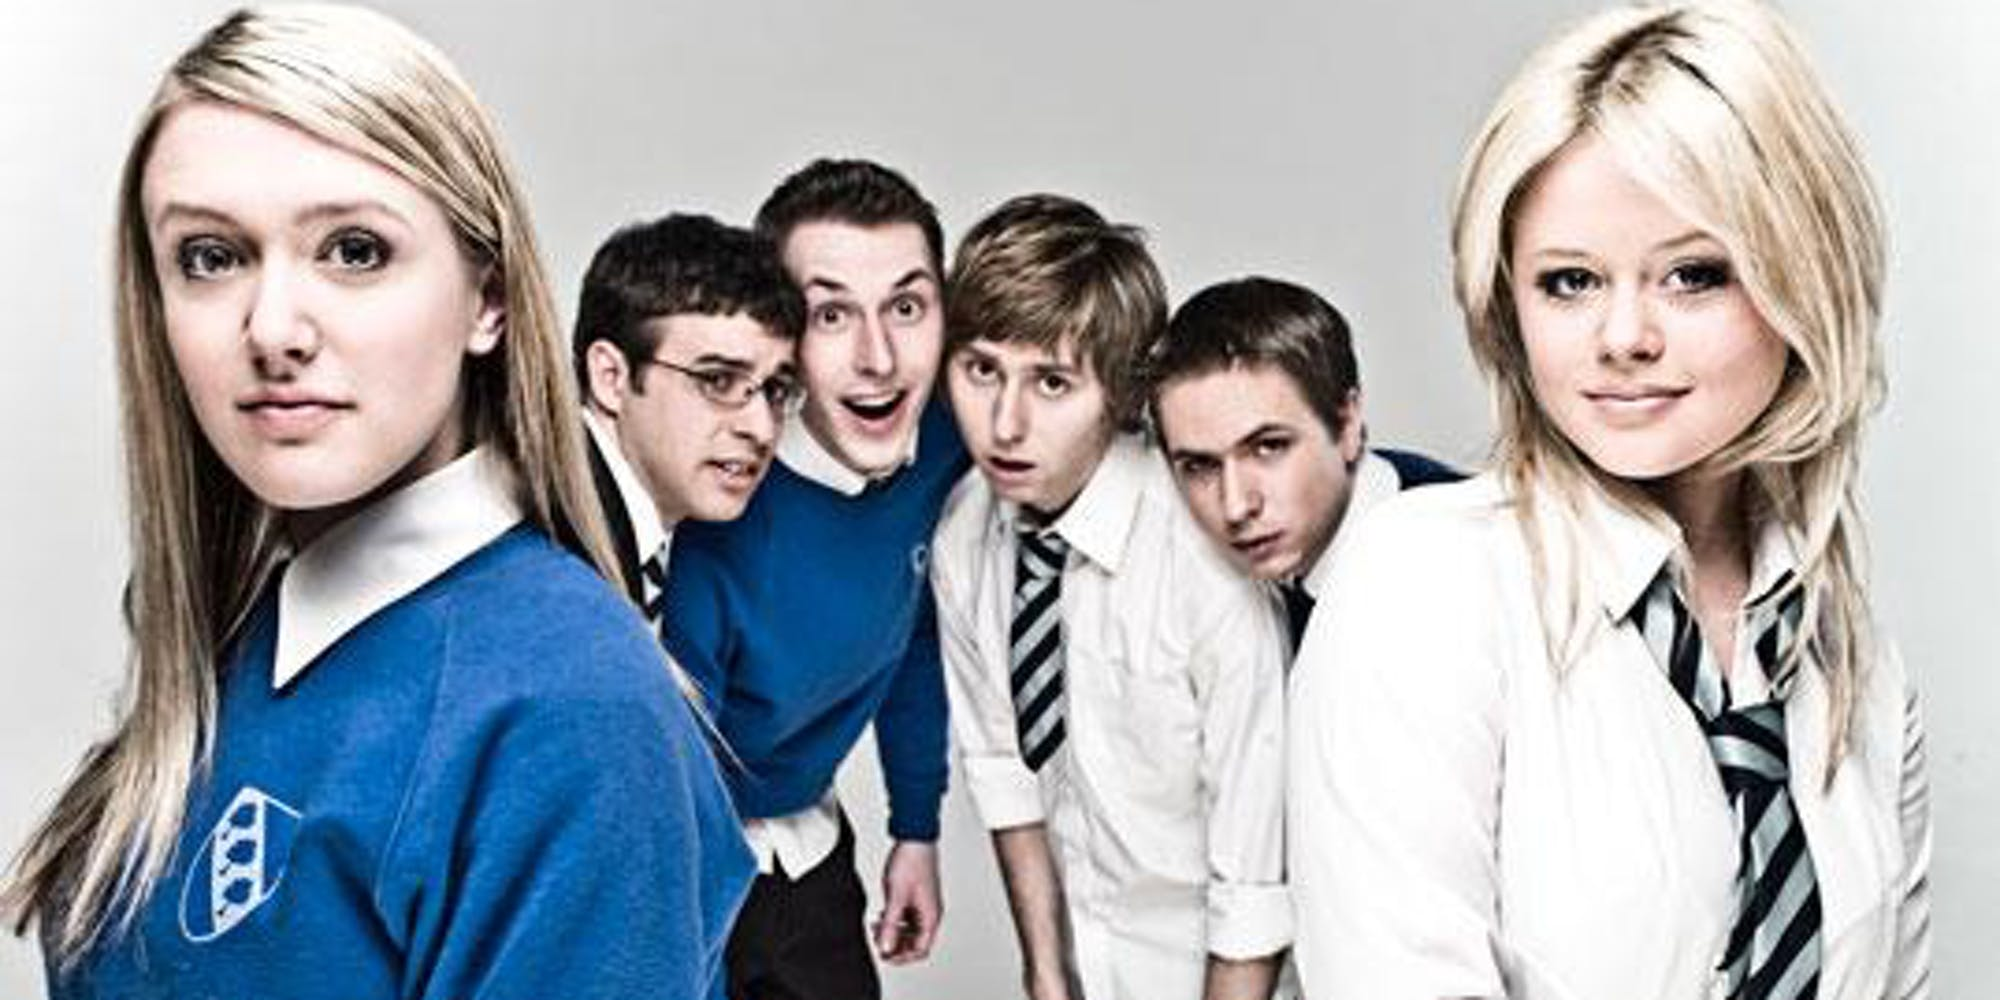 The inbetweeners School Uniform 00s Party! Leeds